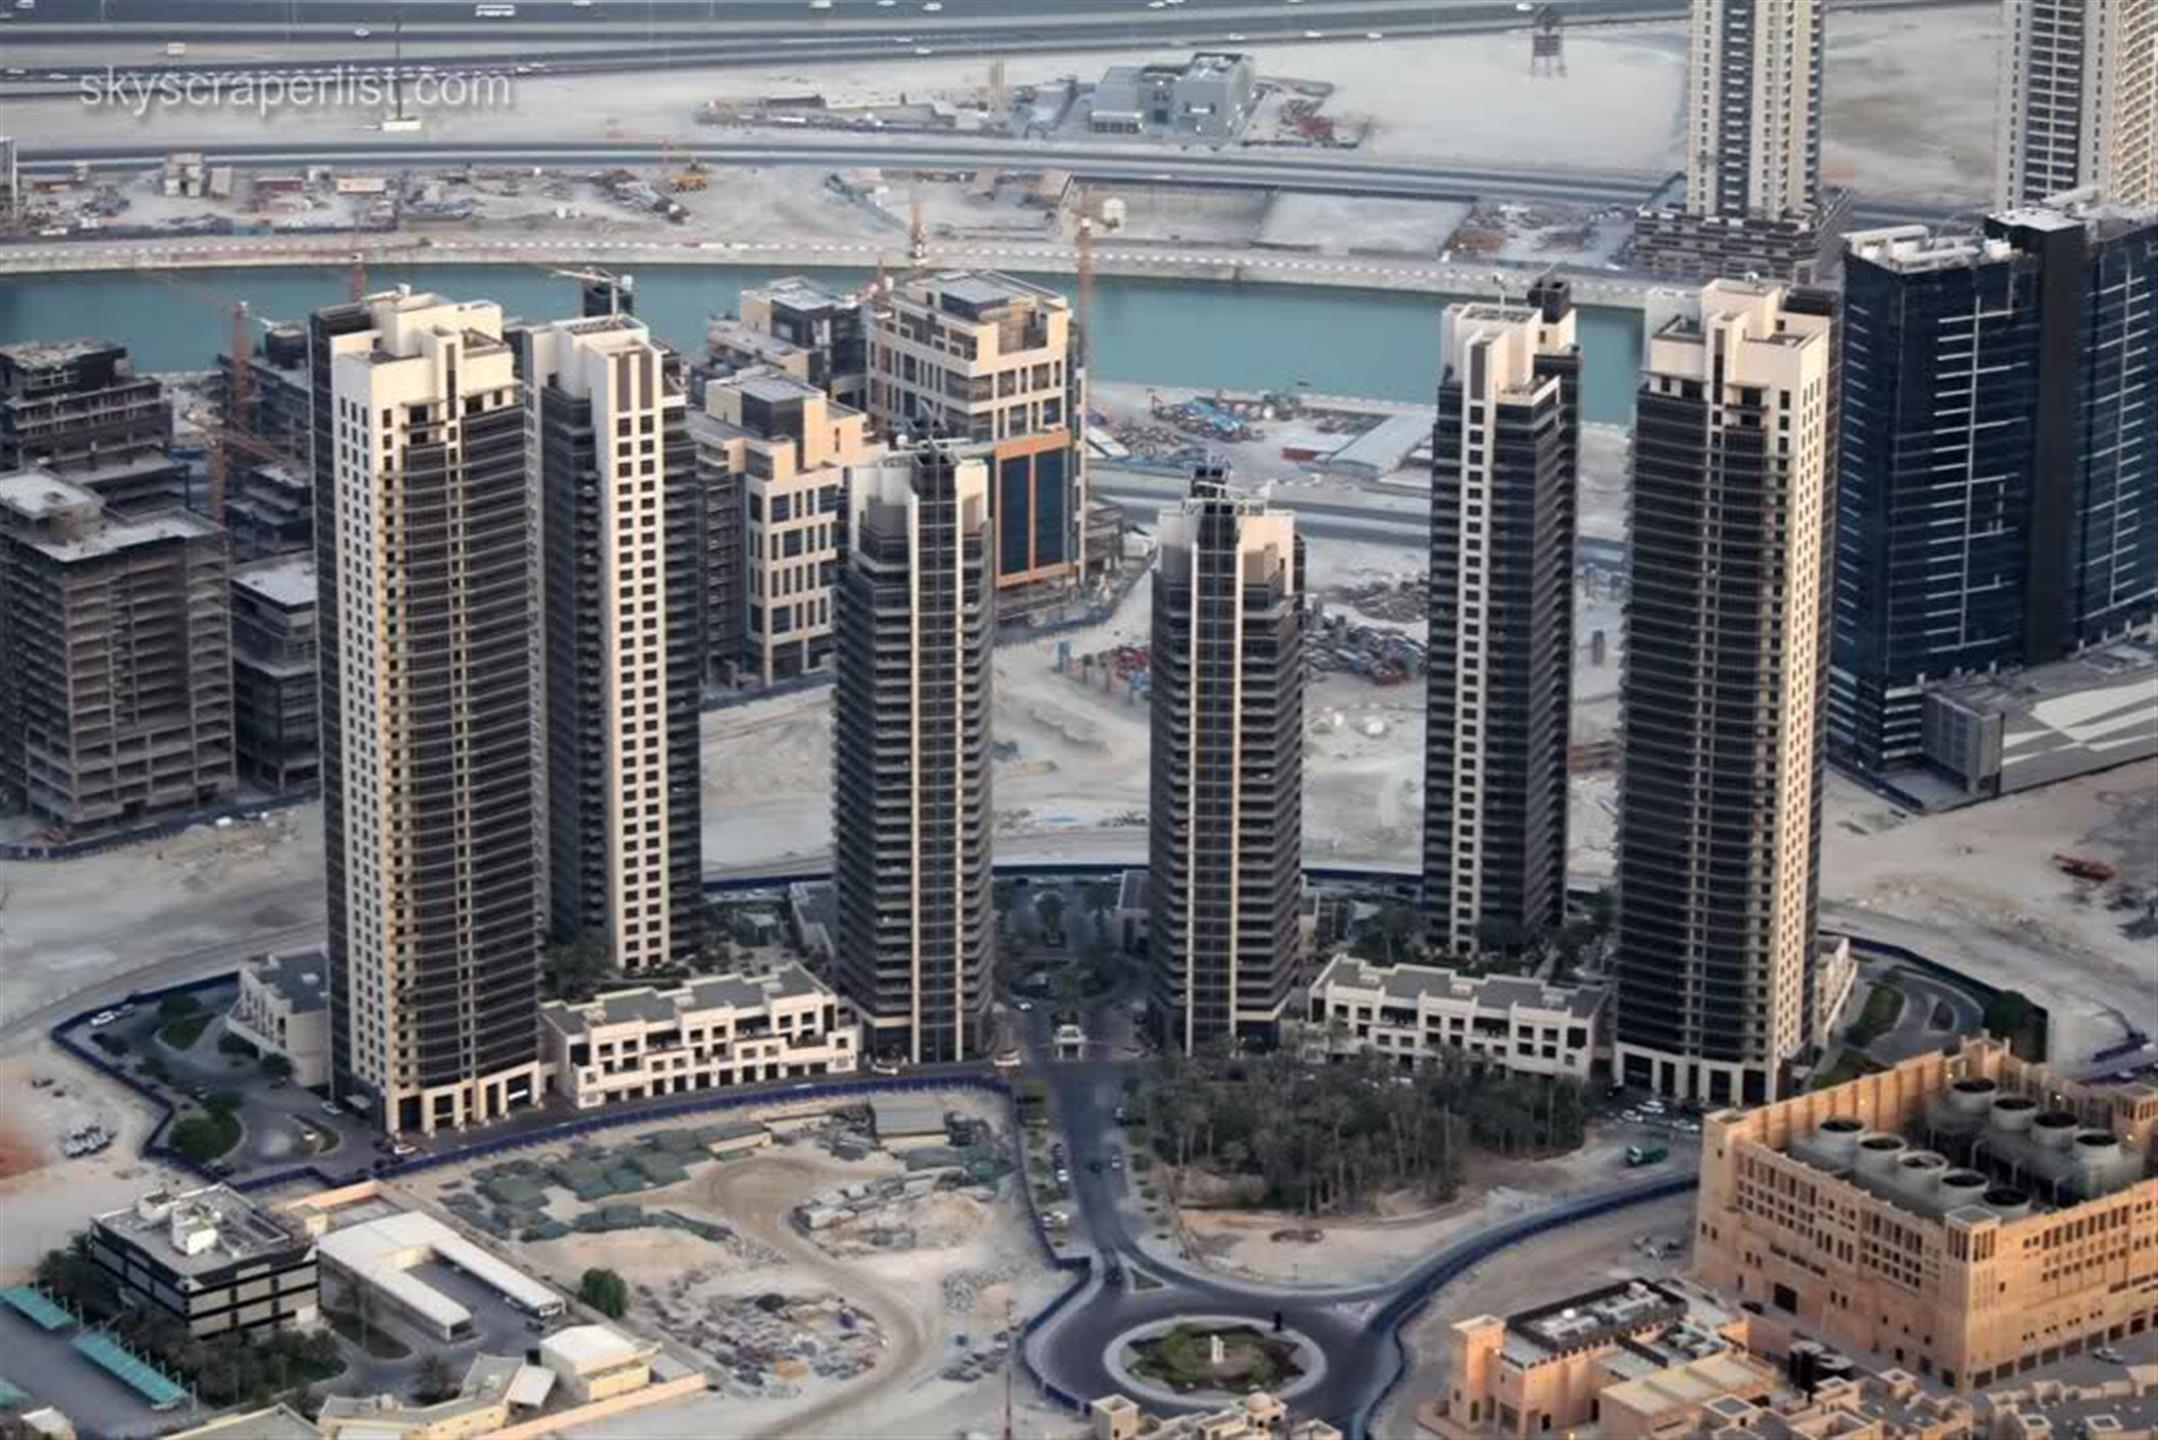 Residential Apartment/Condo, for Sale in United Arab Emirates, Dubai, Downtown Dubai